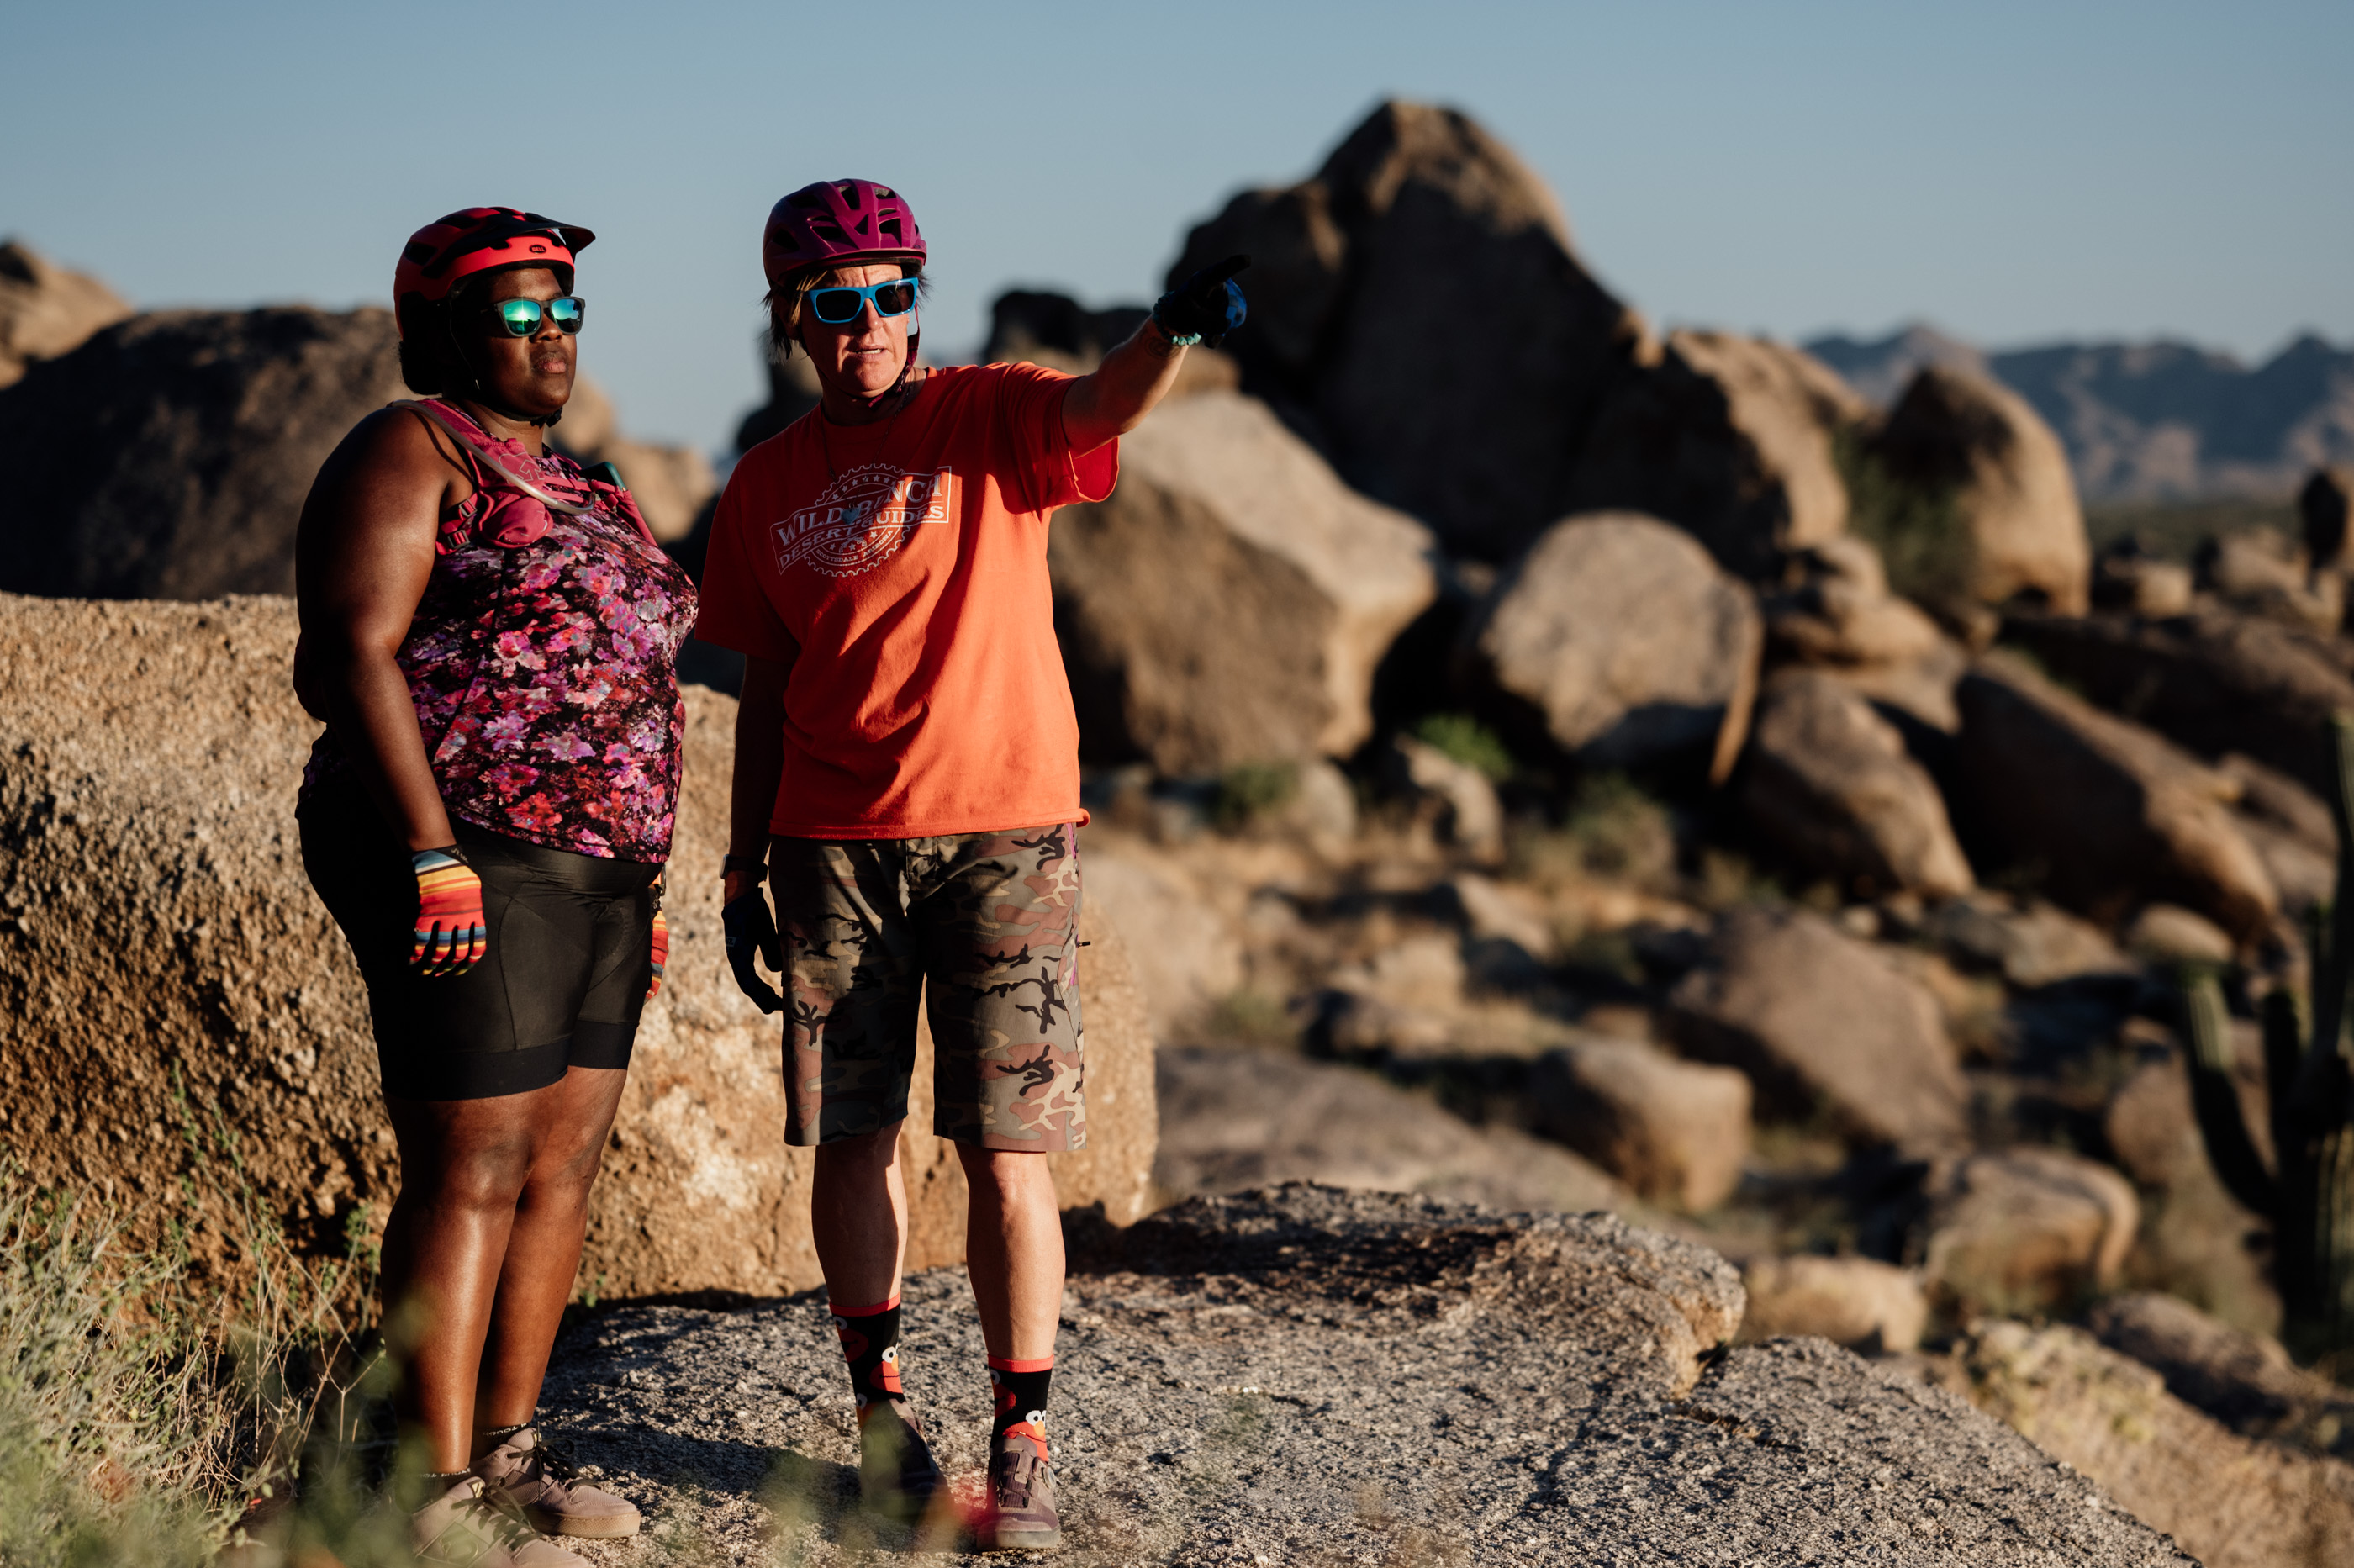 Laurel Darren (right) points out some scenery of interest to Mirna Valerio while they stand atop rocky scenery during a mountain bike ride.